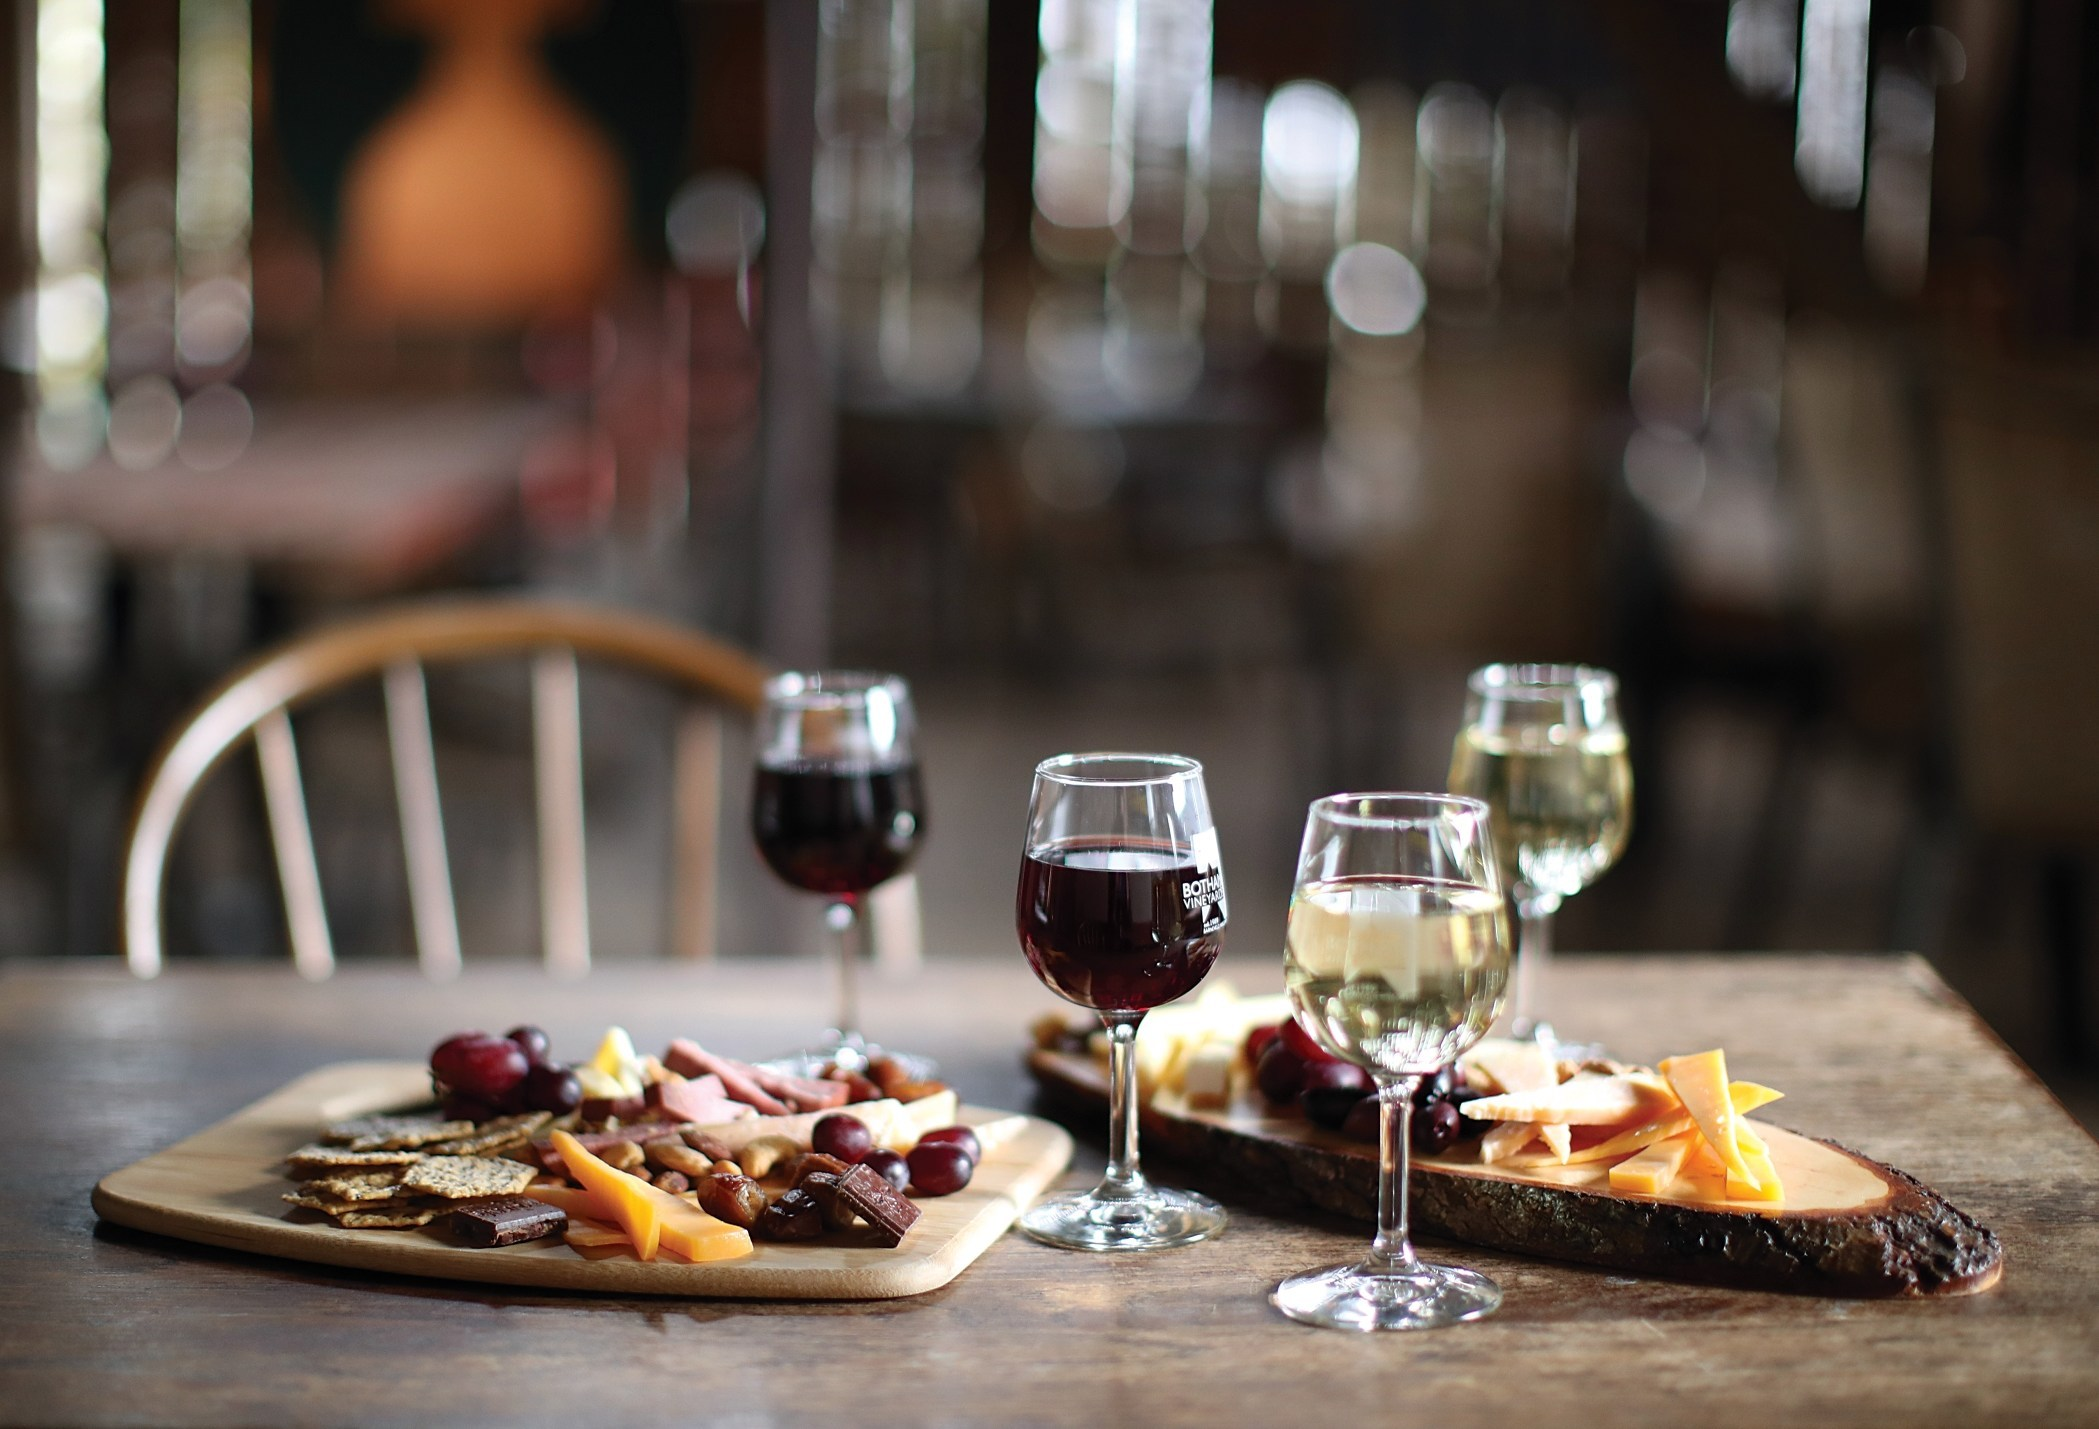 Top 3 Pairing Mistakes to Avoid on National Wine and Cheese Day